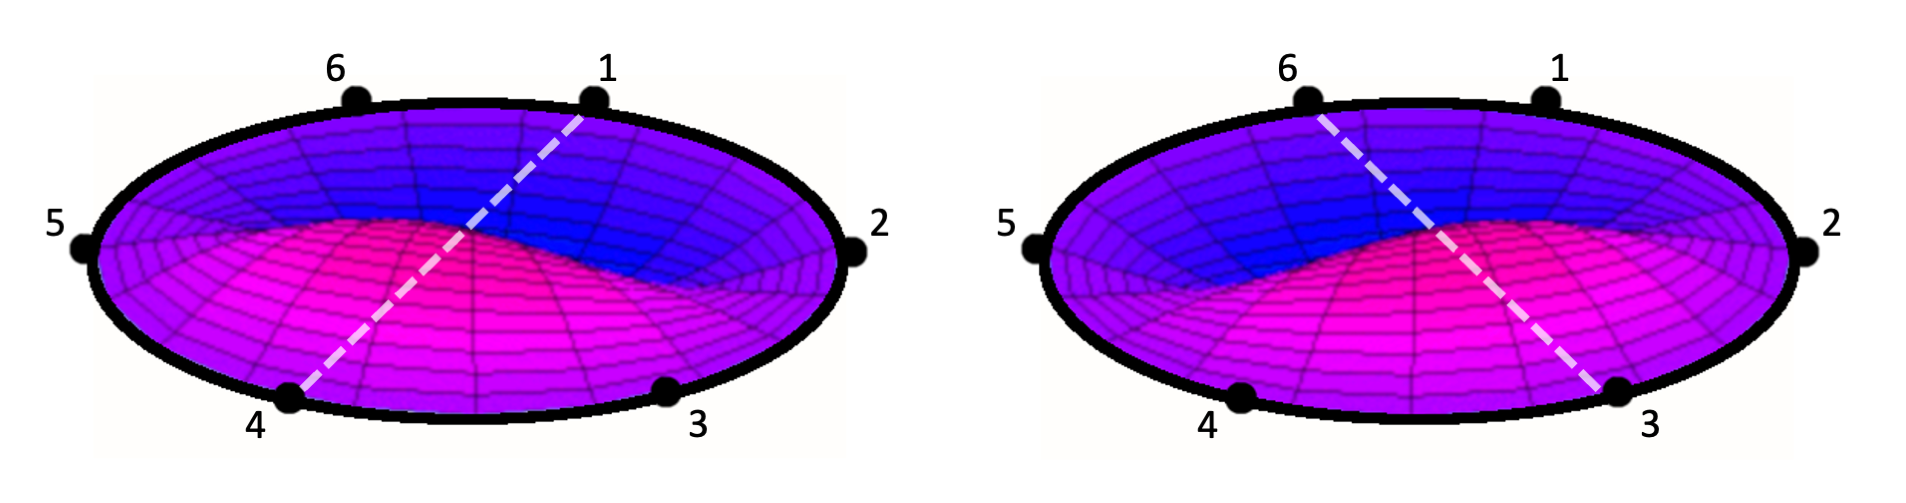 Figure 4.1. F1 overtone vibrations between different lug points on a drumhead